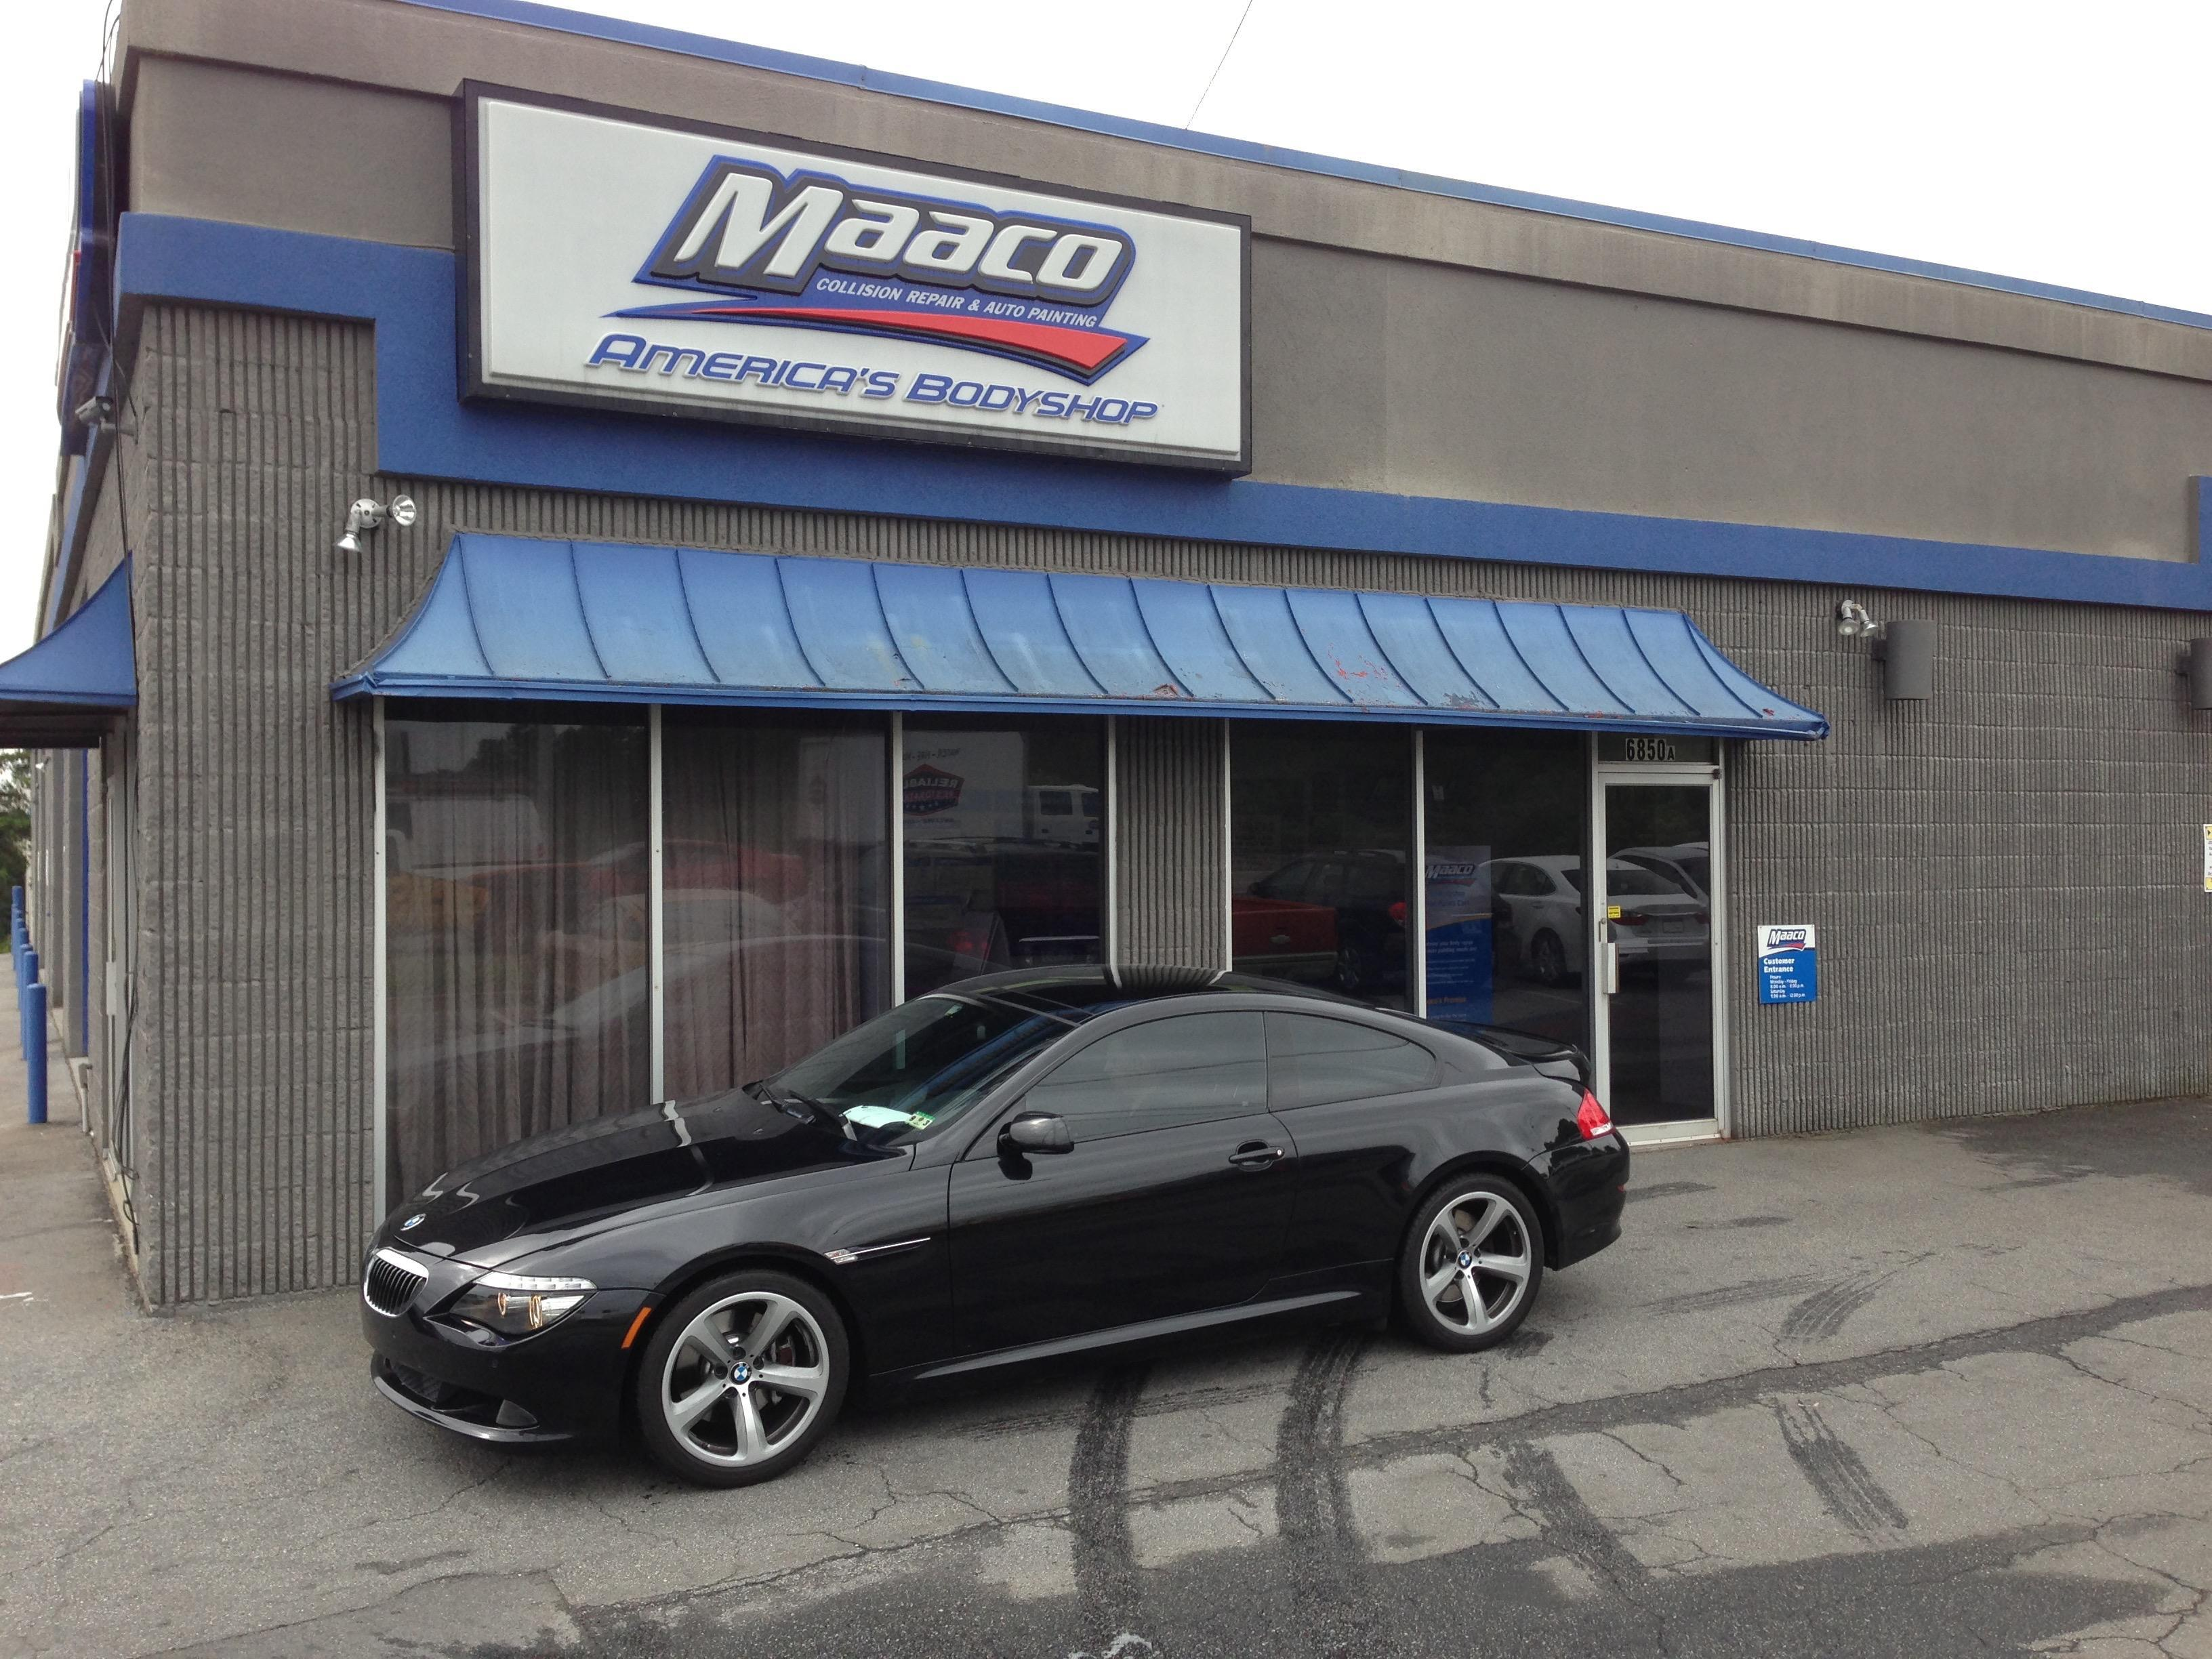 Maaco Collision Repair & Auto Painting image 3